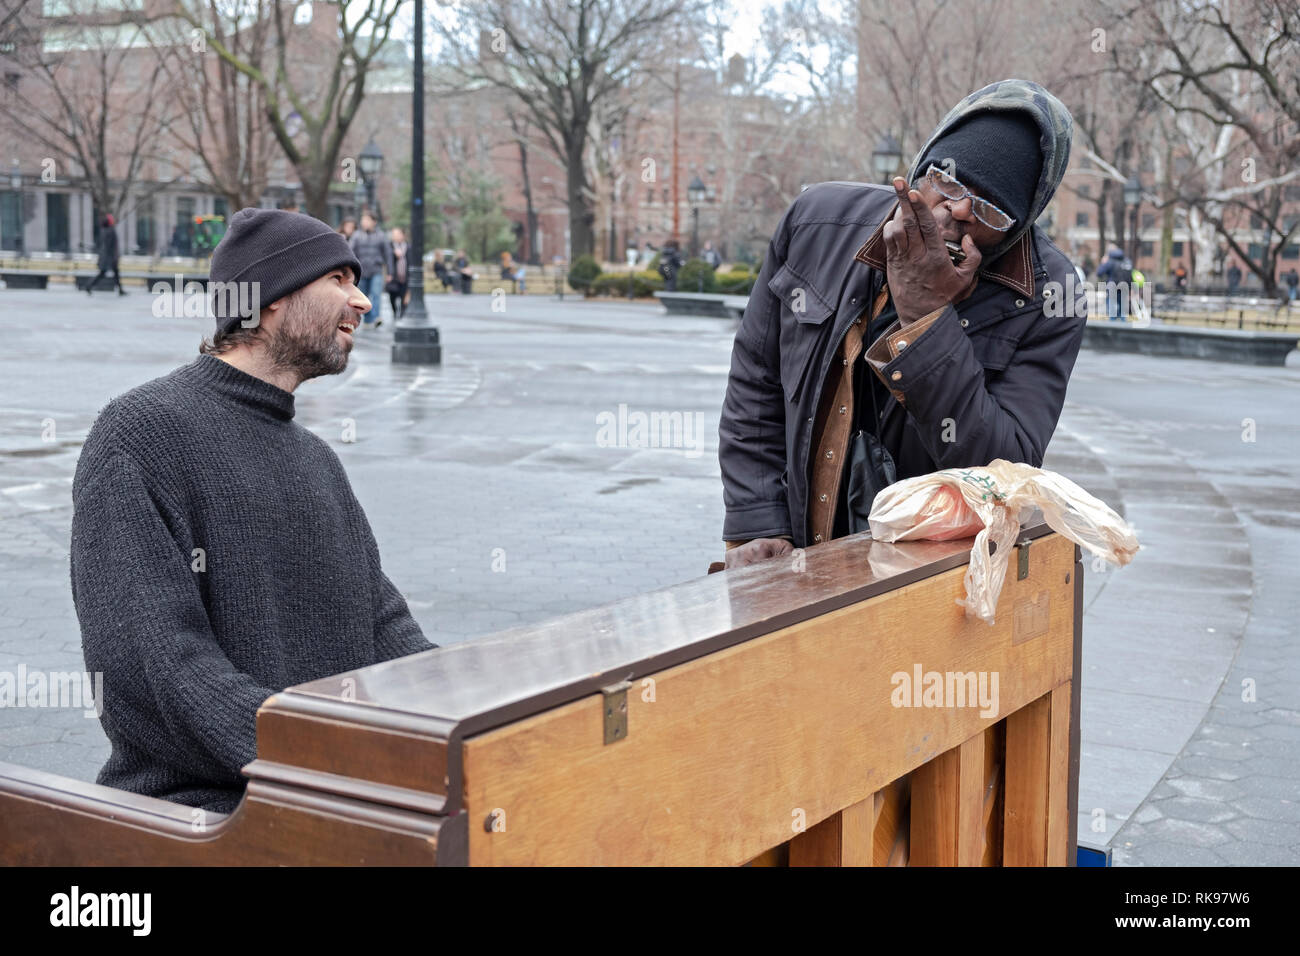 A piano playing busker performs with a passer bye who did blues duets with him on his harmonica. In Washington Square Park in Manhattan, NYC. - Stock Image